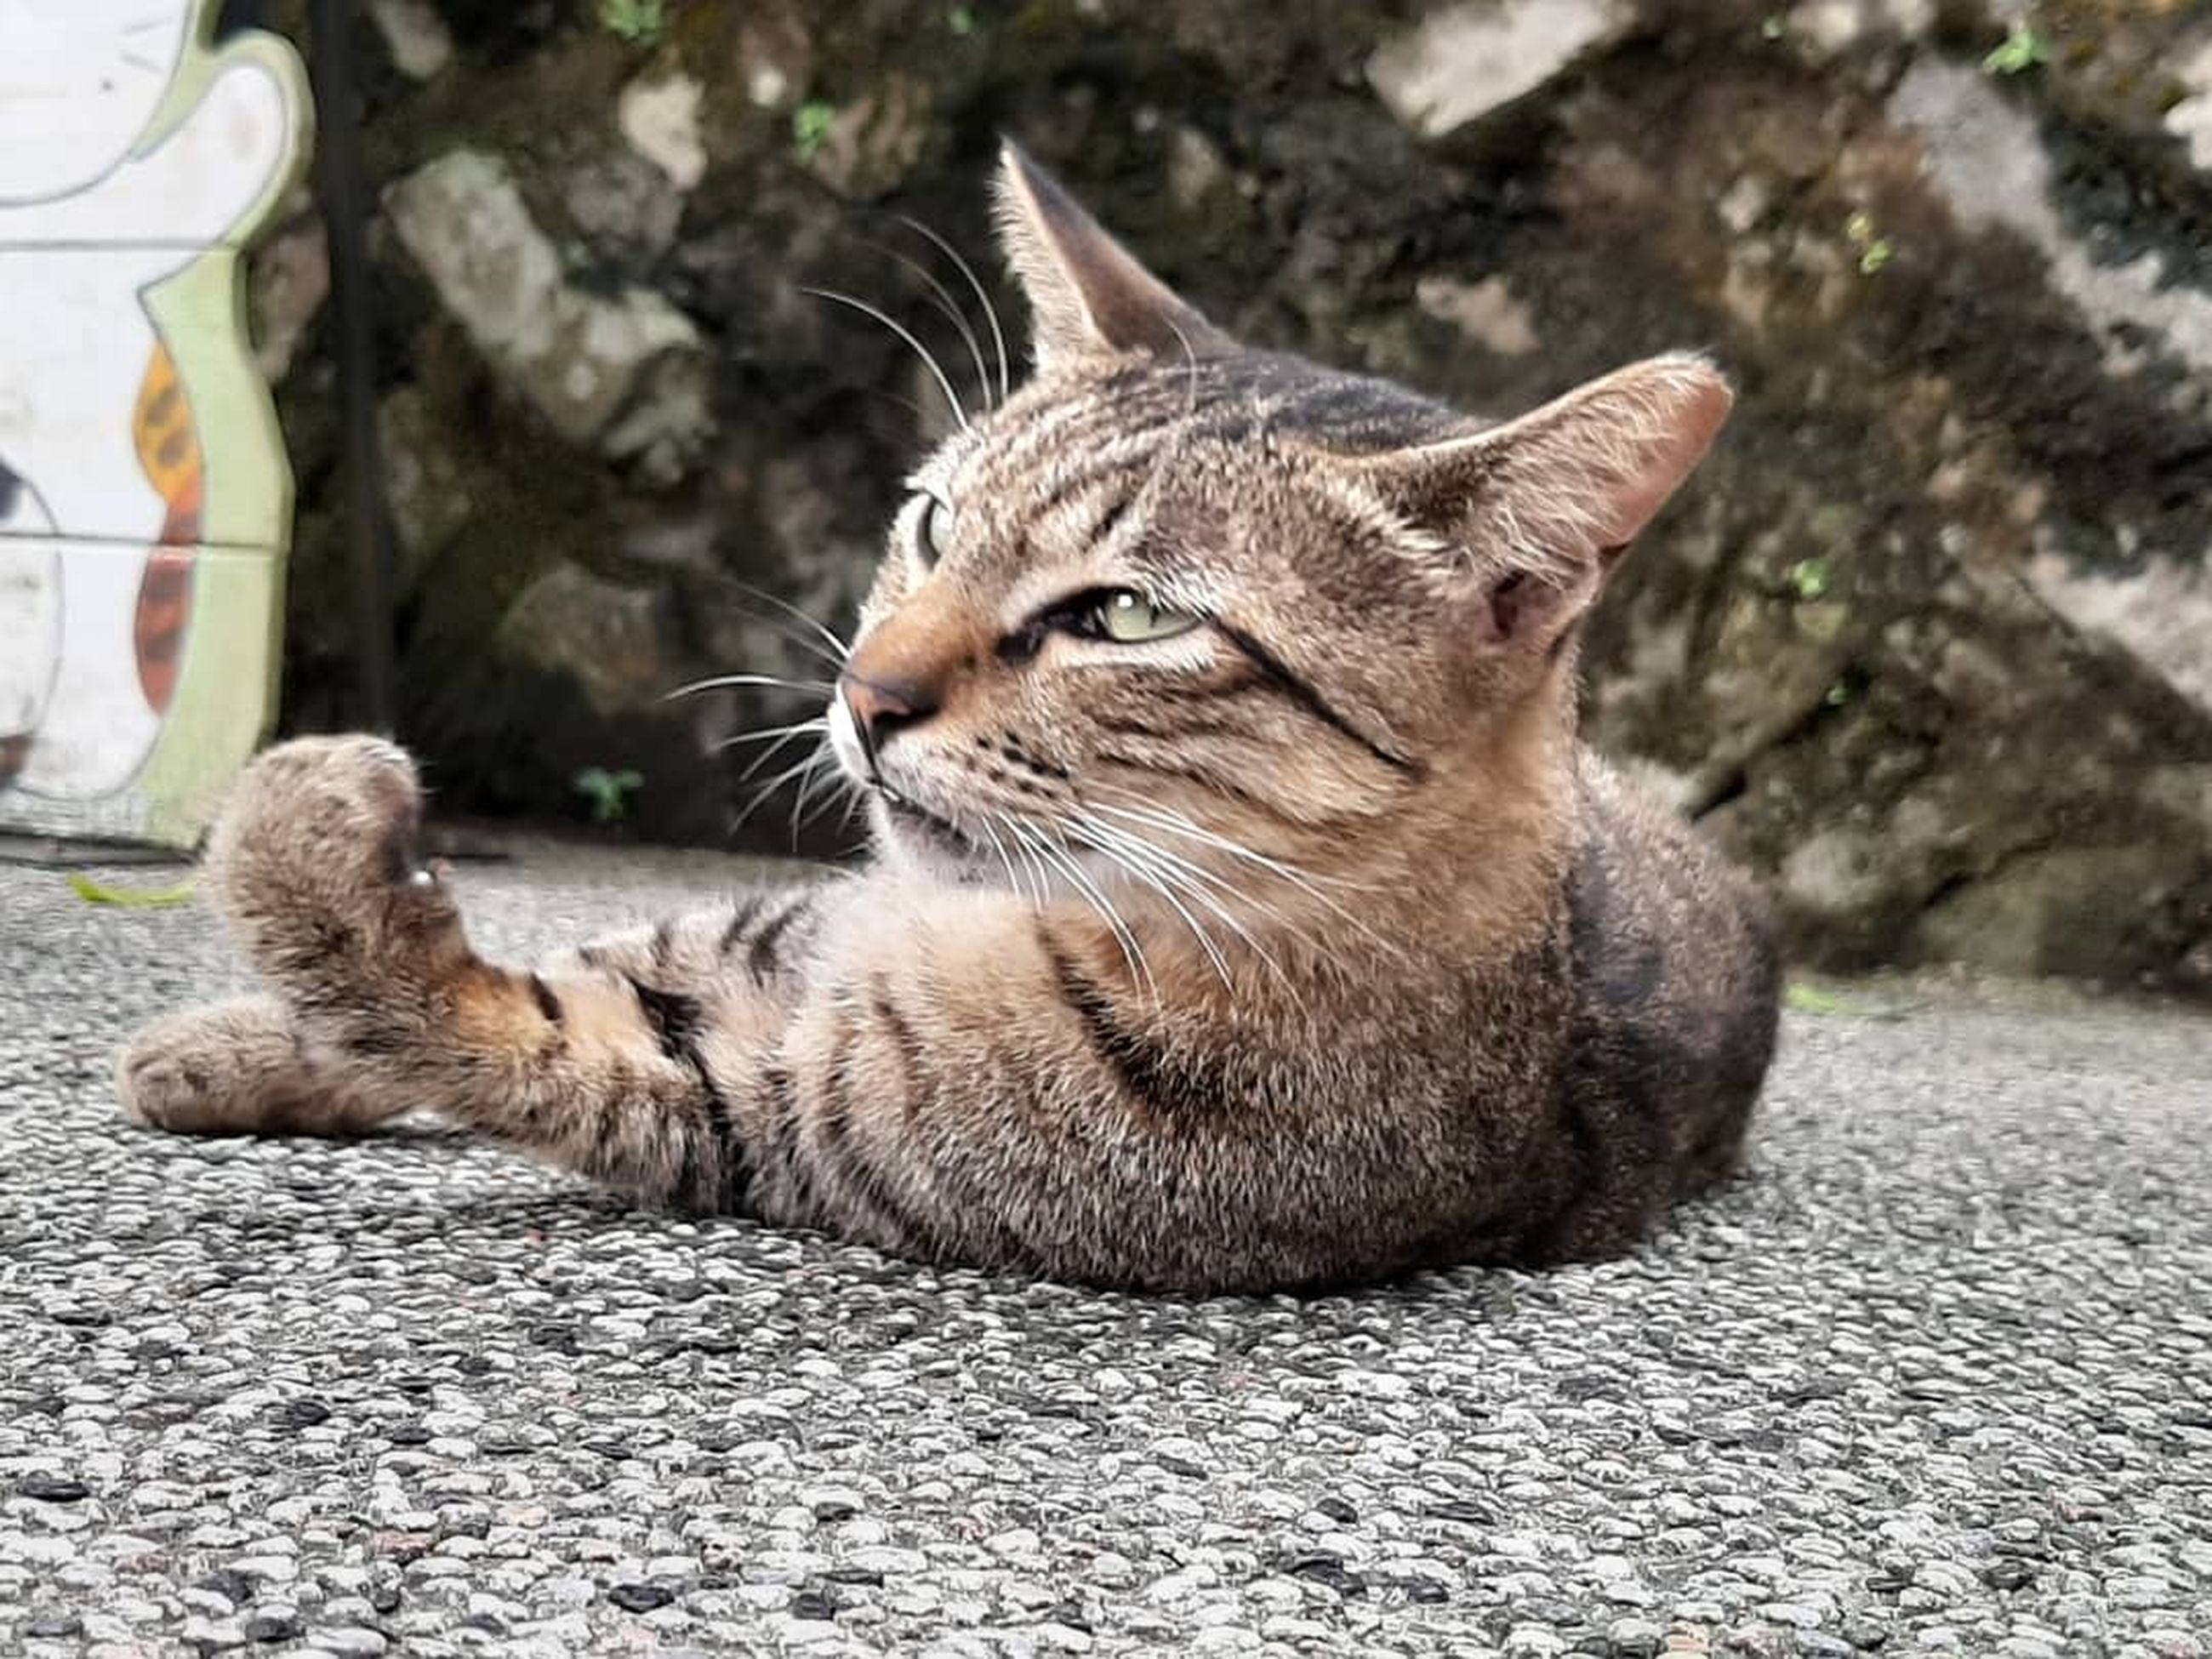 mammal, animal themes, animal, pets, domestic, domestic animals, cat, feline, domestic cat, one animal, vertebrate, whisker, relaxation, no people, focus on foreground, close-up, day, looking, lying down, nature, tabby, animal head